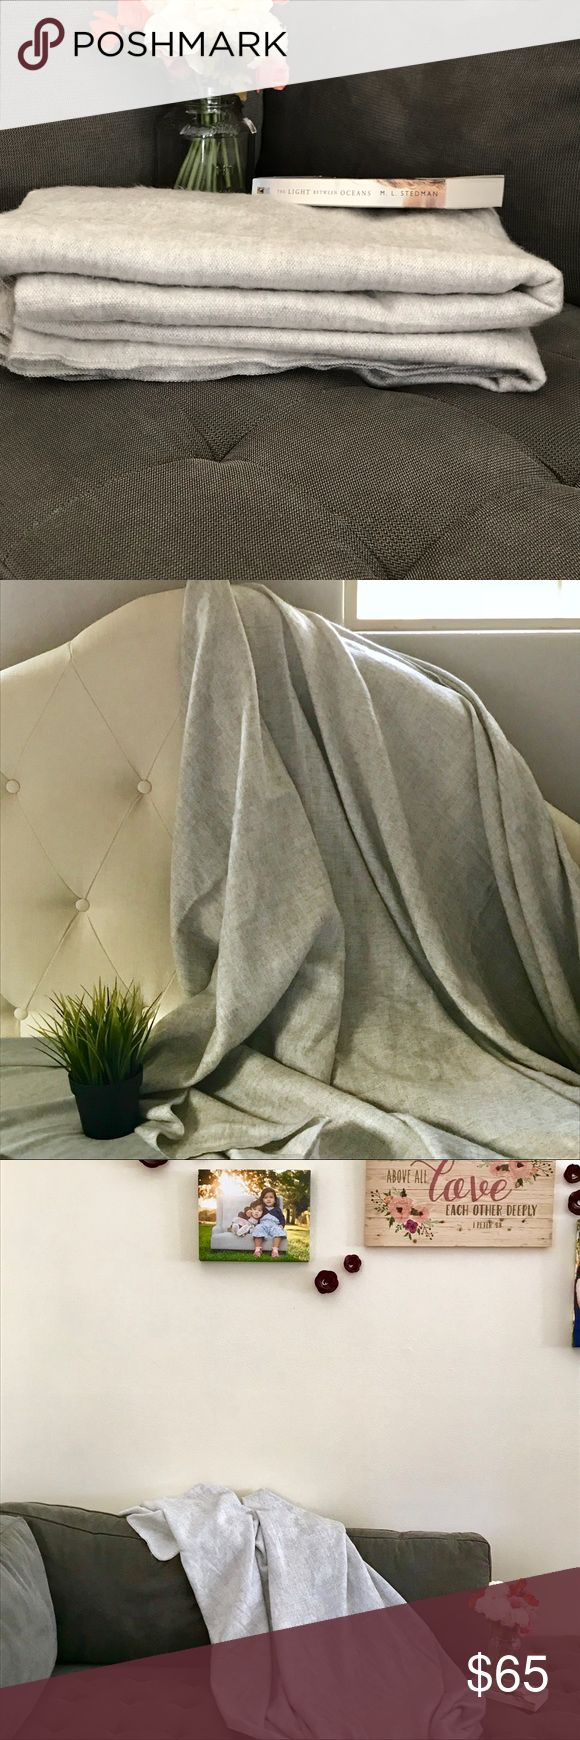 """Alpaca Blend Oversized Throw Blanket from Ecuador This beautiful oversized blanket throw was purchased in an indigenous town in Ecuador known for their handmade crafts and textiles.   Made of and Alpaca Wool blend, this heather gray blanket has a soft buttery texture.  It is thin but extremely soft and warm!  You will not be disappointed. This can serve as a cover over a twin size bed. Has one snag as shown but overall in great condition.  86"""" x 58"""" Other"""